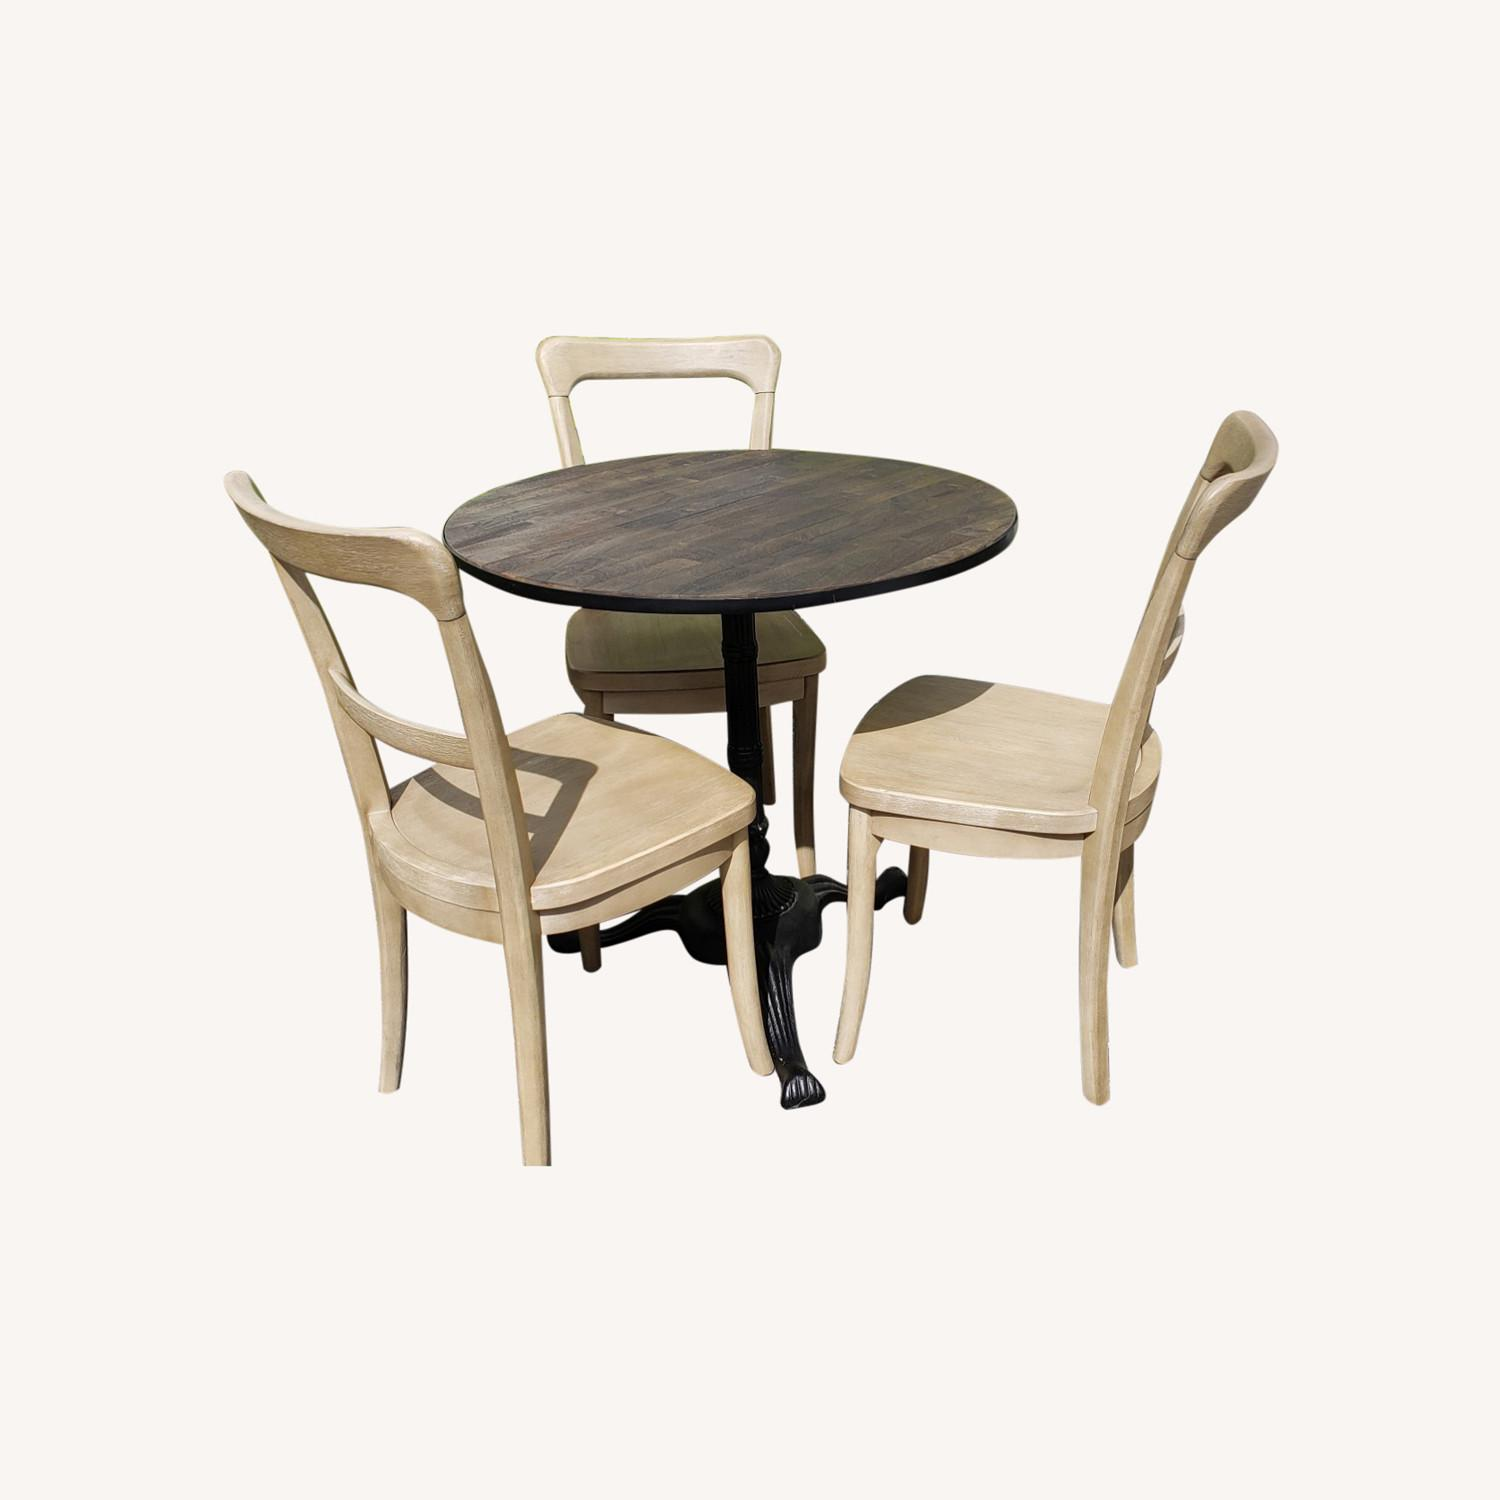 Pottery Barn Rae Bistro Dining Table Set With 3 Chairs Aptdeco